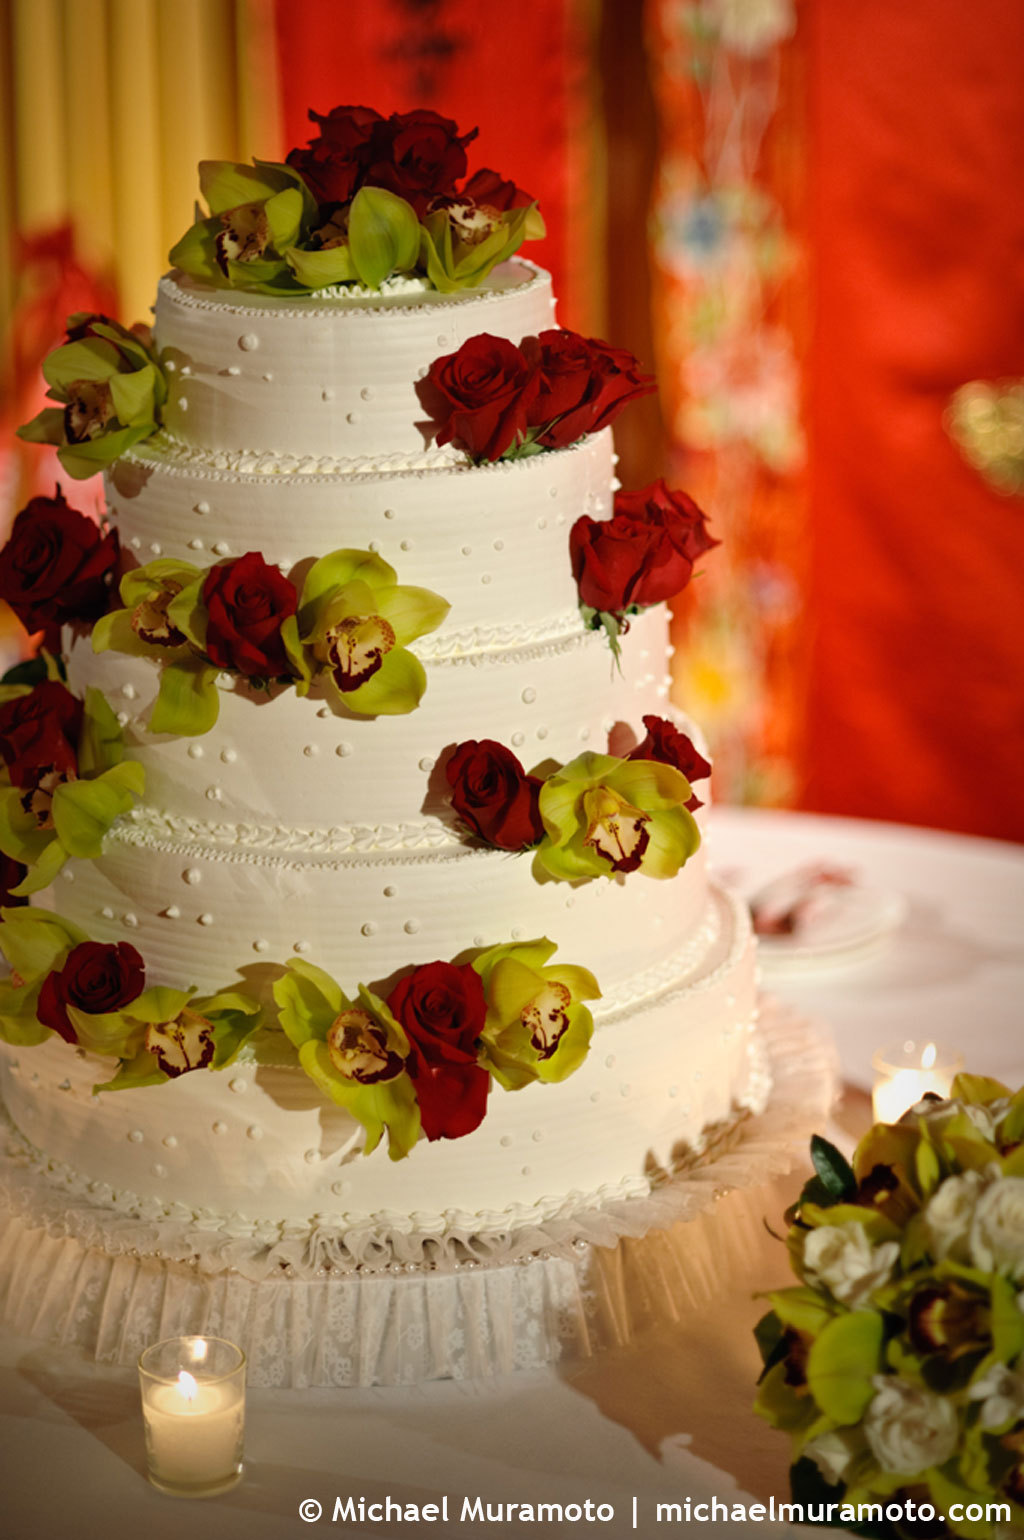 yellow, red, green, Wedding cake, Michael muramoto photography